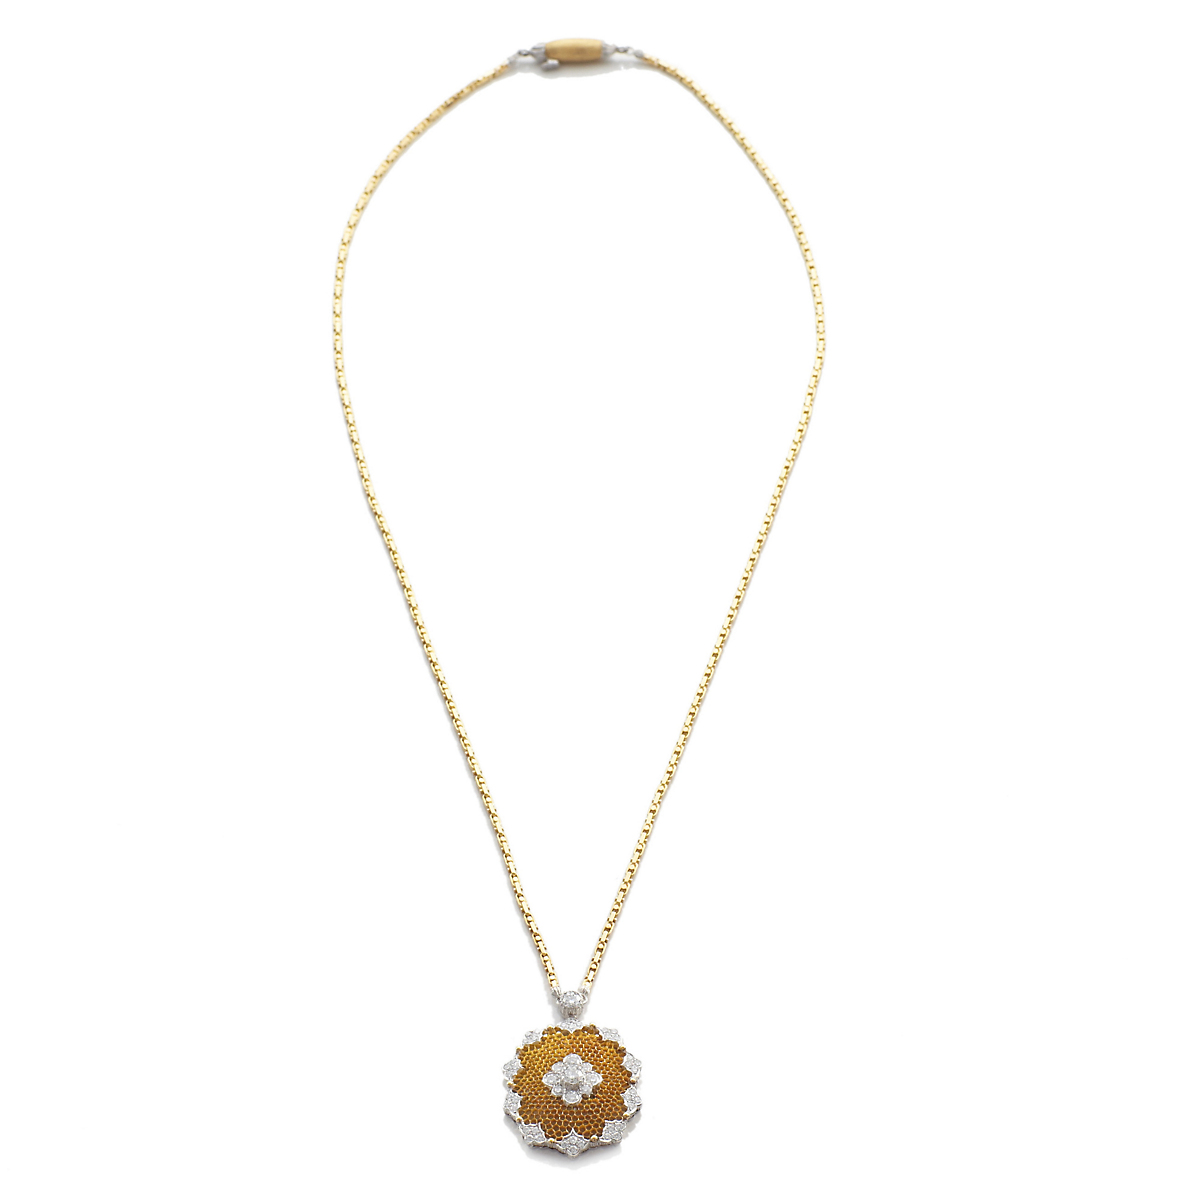 Buccellati Diamond & Gold Honeycomb Necklace